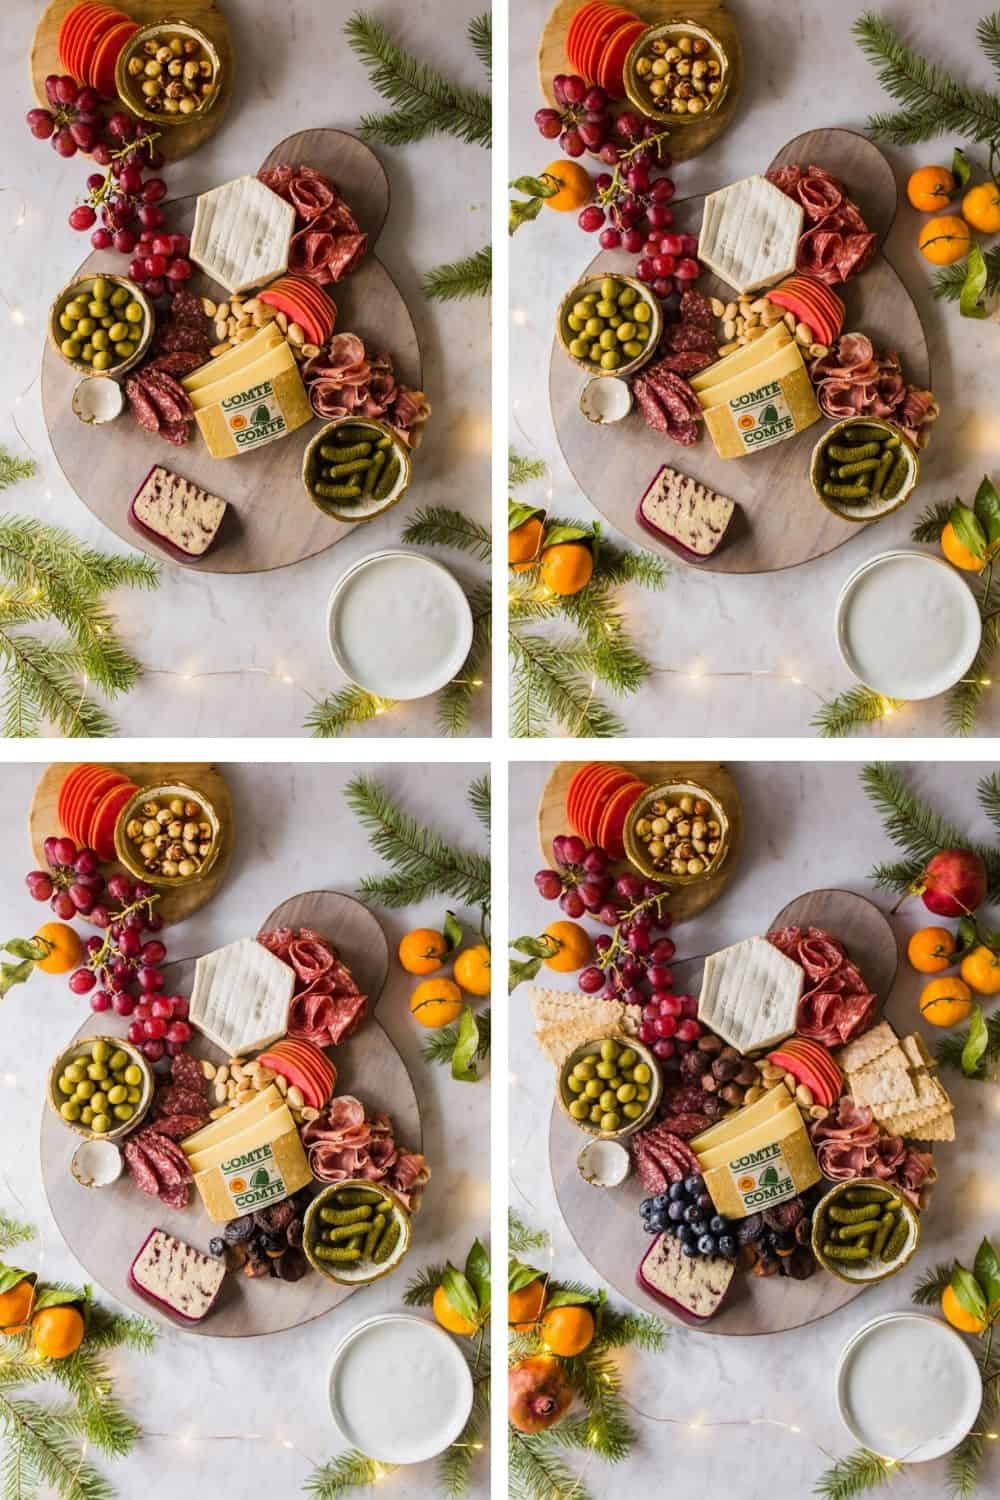 4 images showing how to assemble a holiday charcuterie board